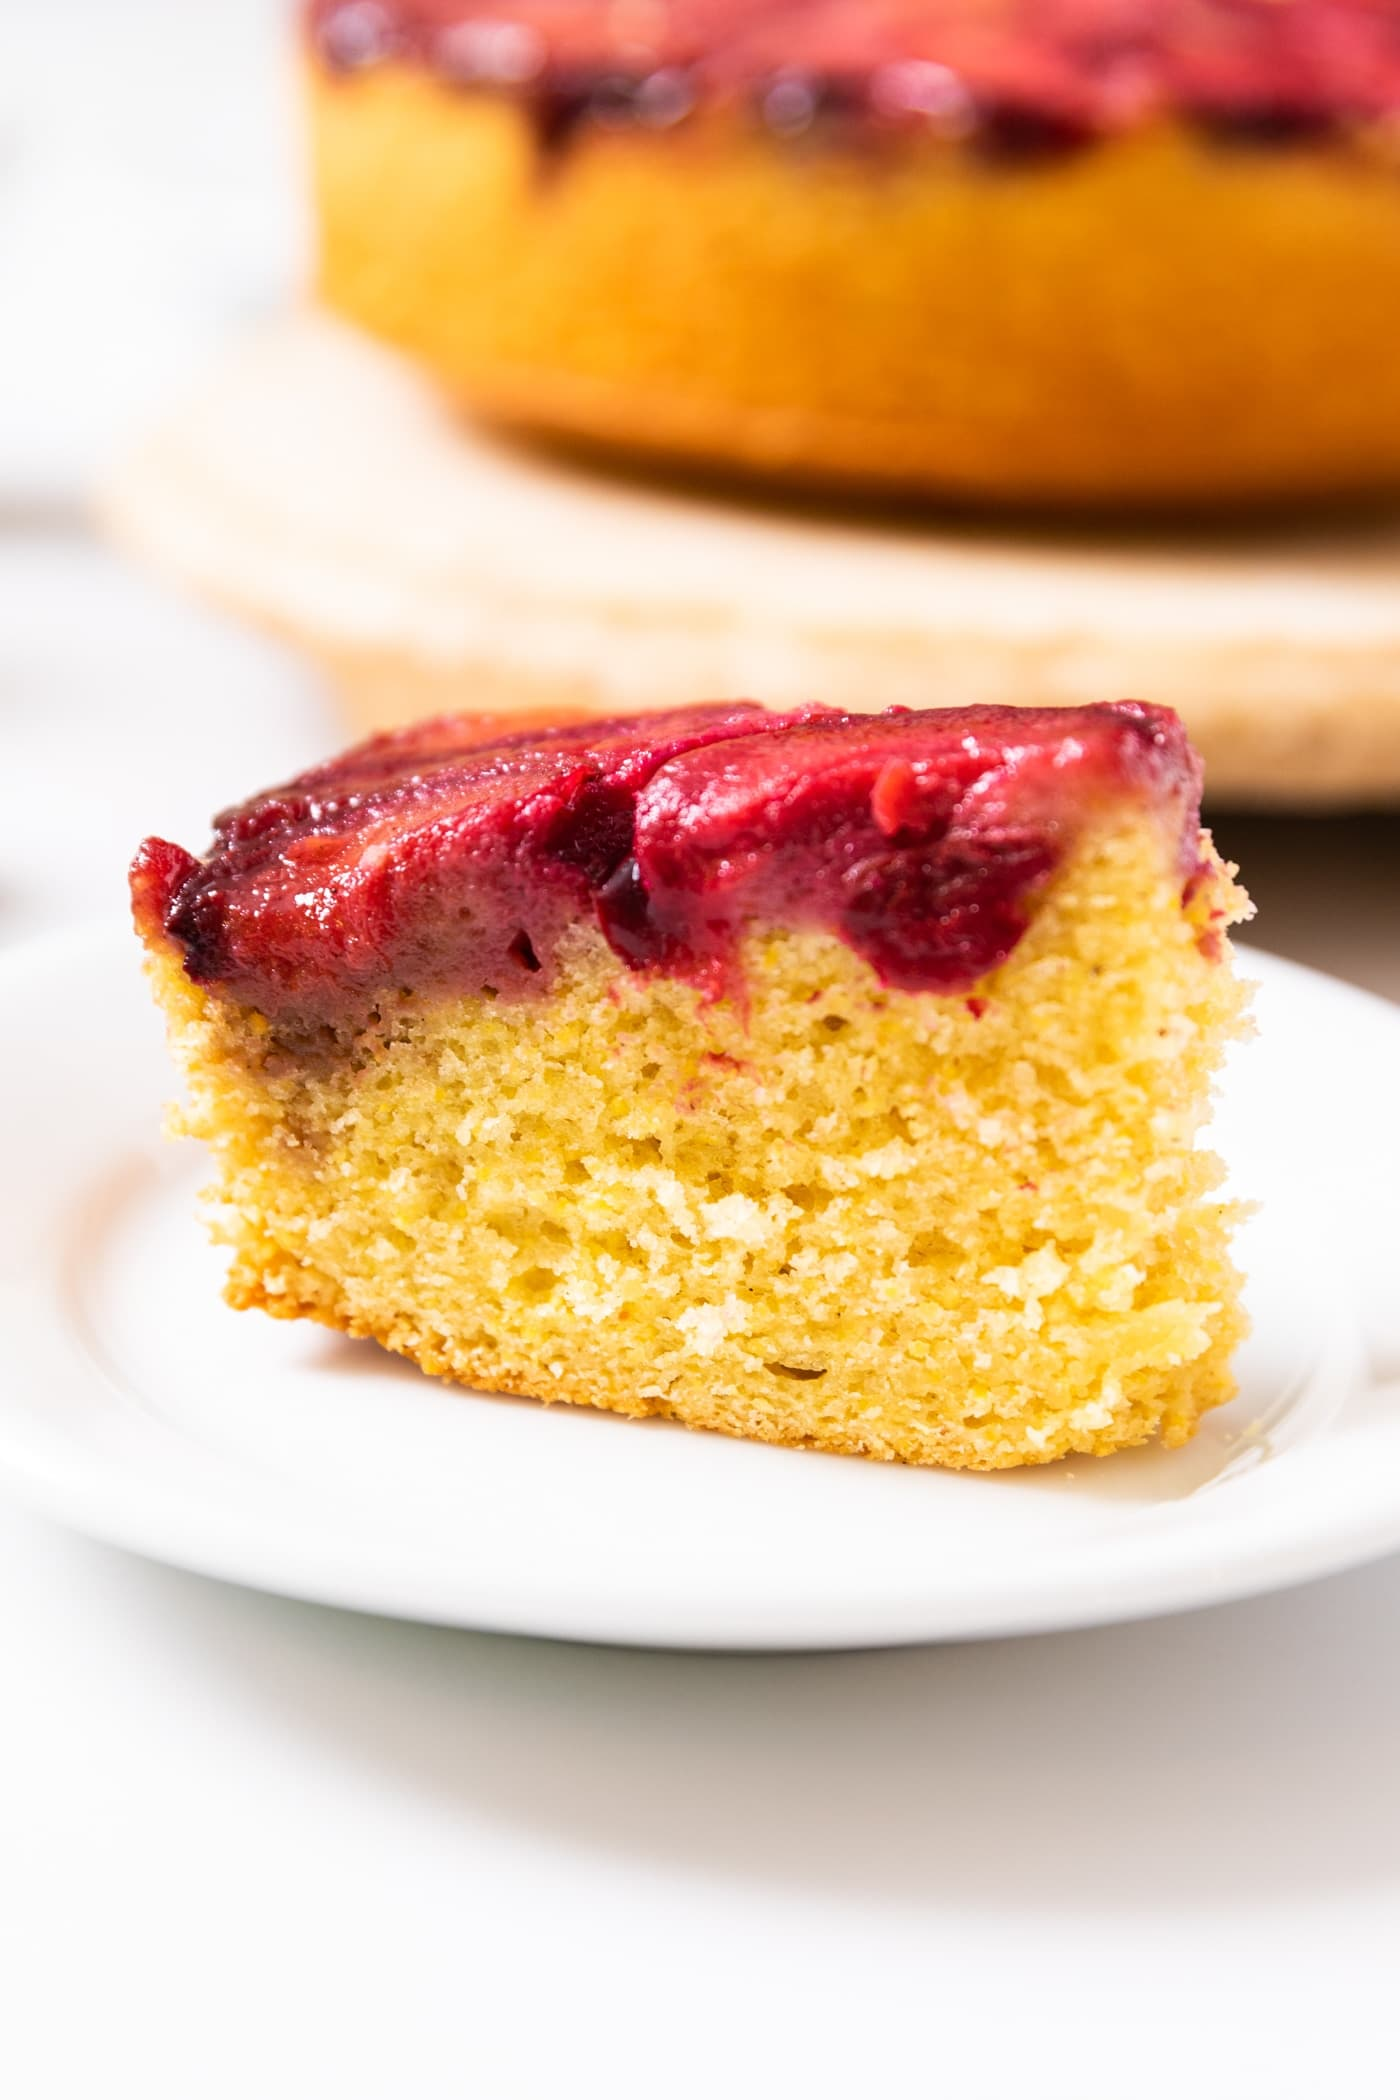 Side view of yellow colored cornmeal cake with a plum layer topping sitting on white plate with rest of cake in background